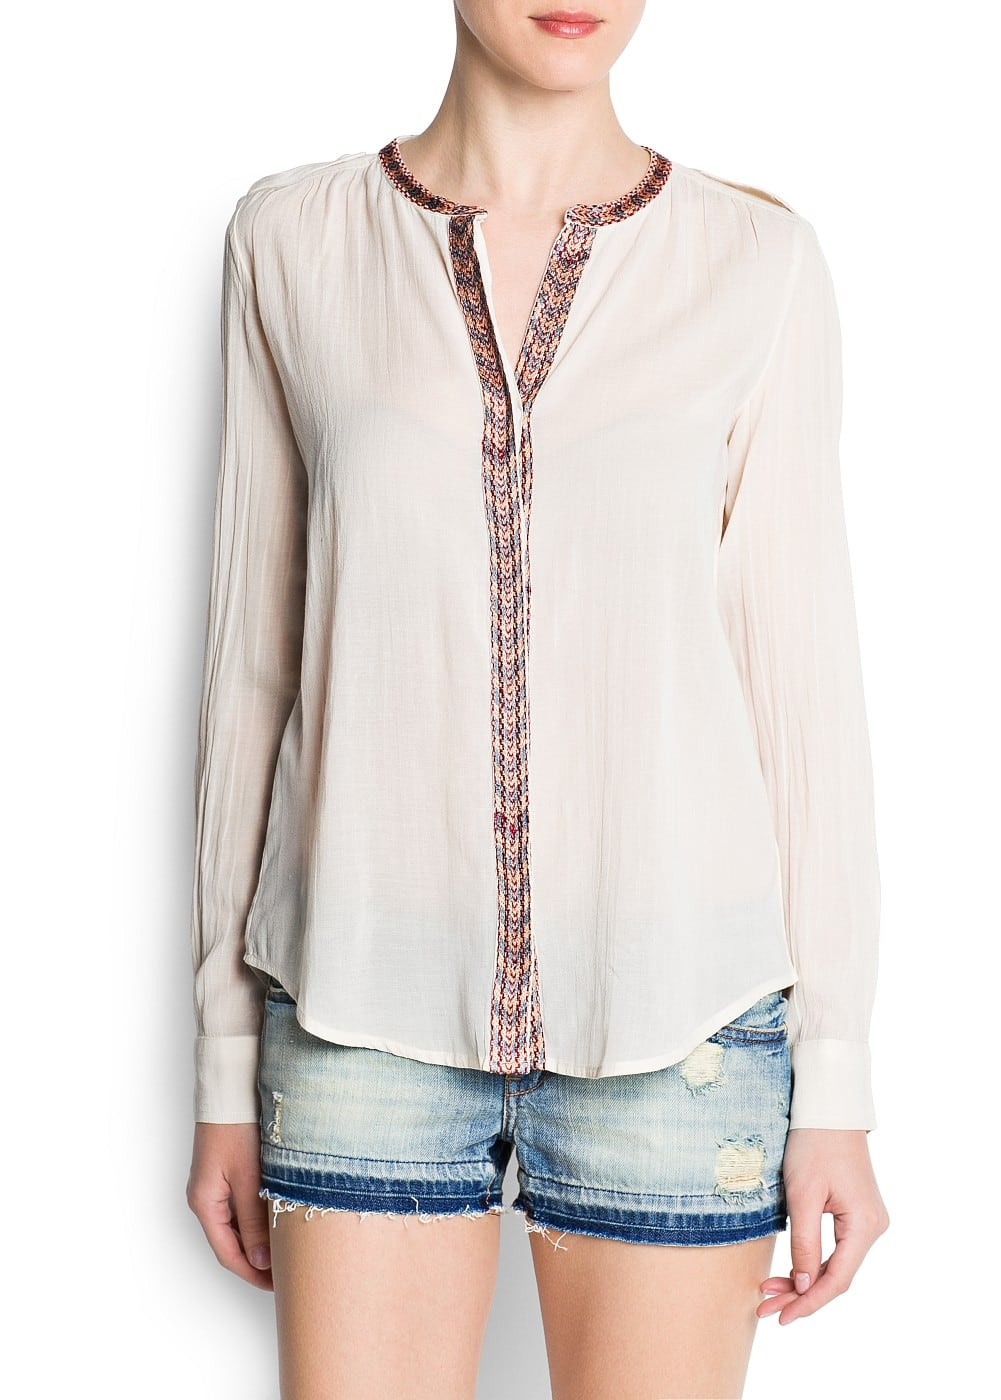 Ethnic edges blouse